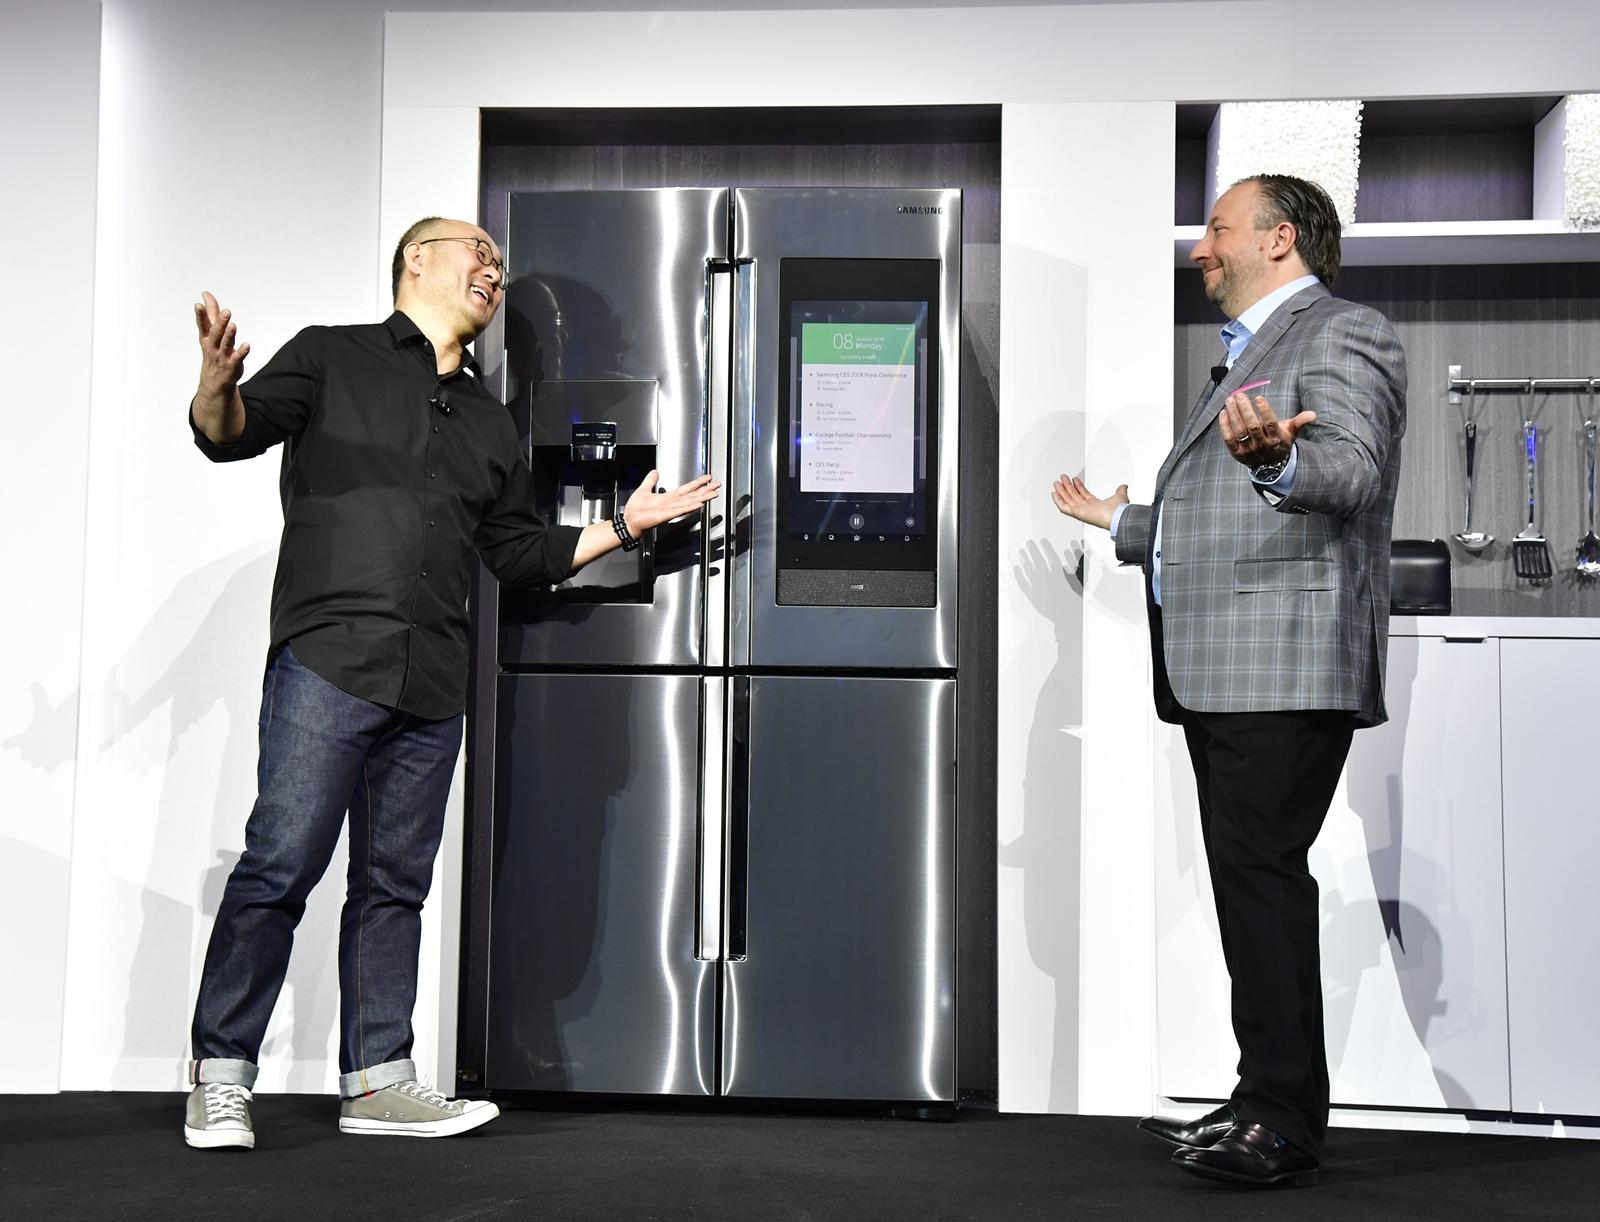 Samsung's Yoon Lee (left) and Joe Stinziano at the company's CES 2018 press conference